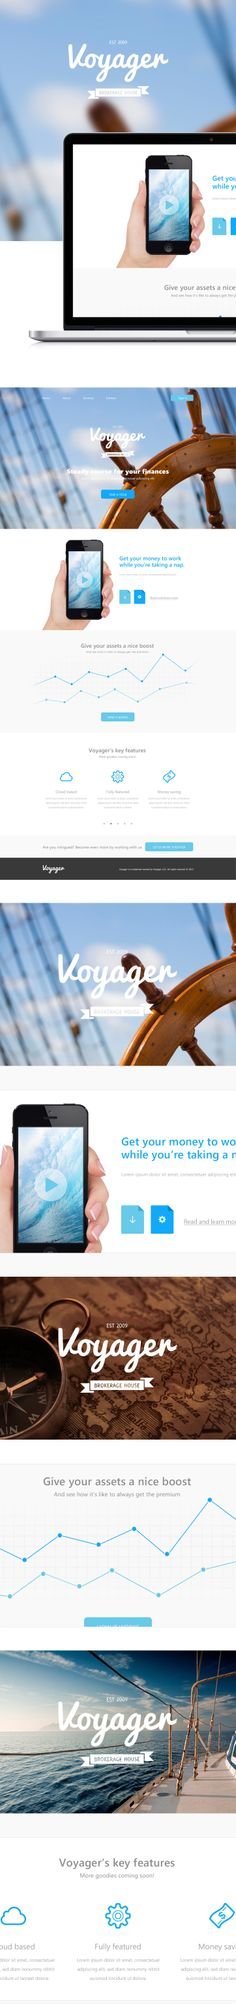 Voyager http://www.behance.net/gallery/Voyager/9372343